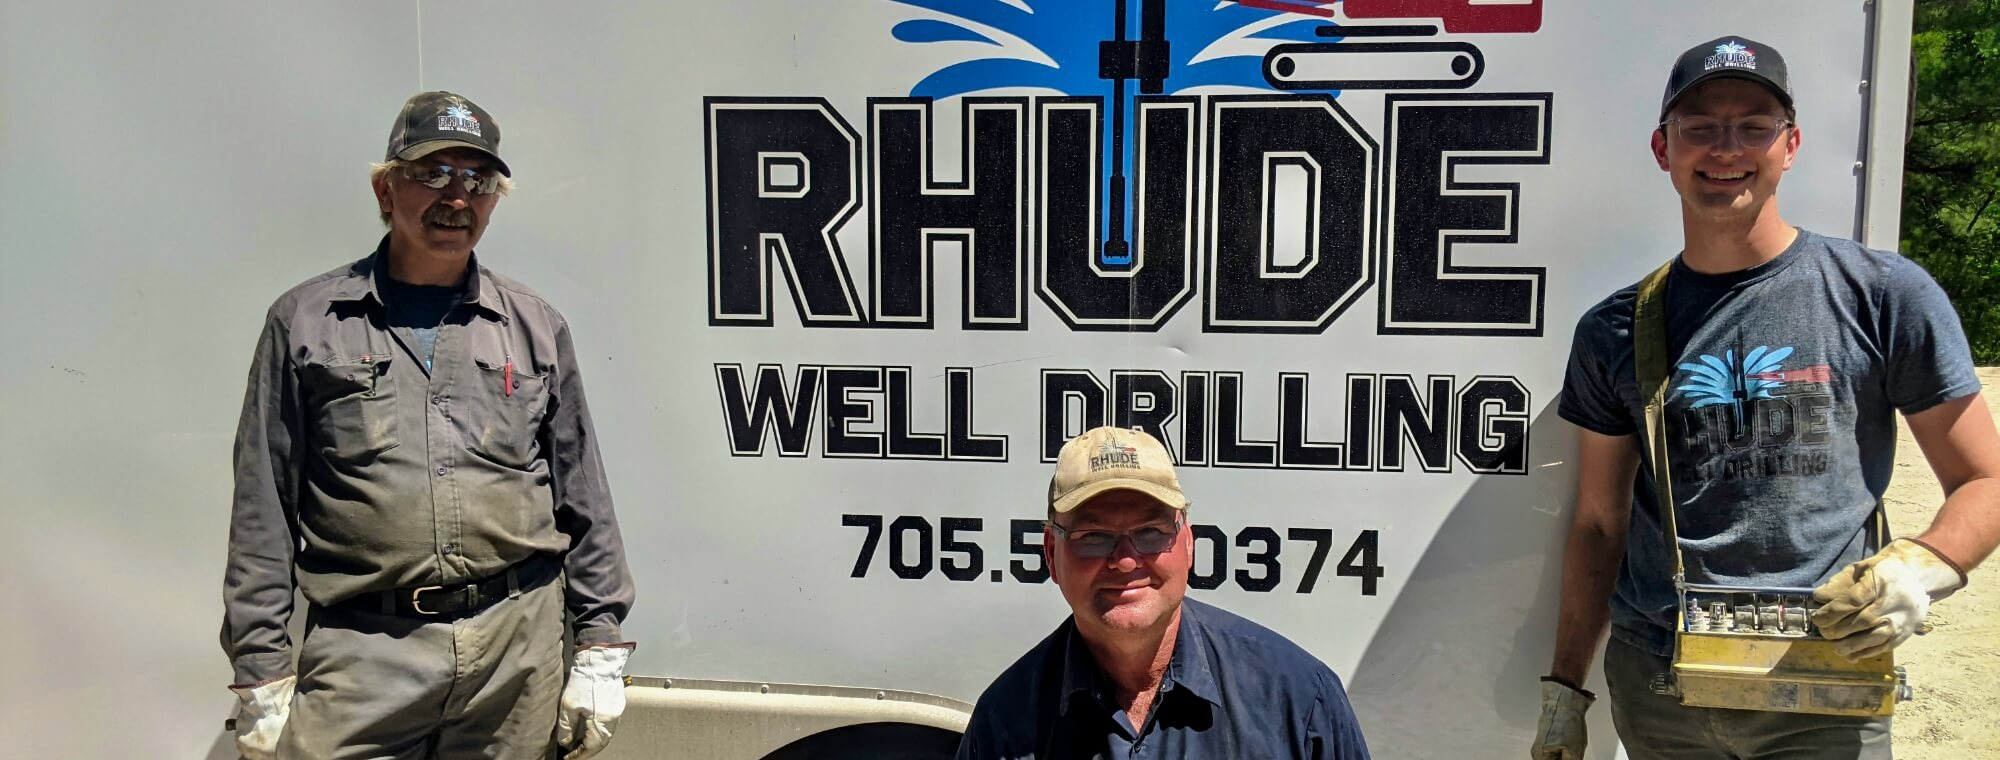 A few of the Rhude Well Drilling technicians smiling in front of a company trailer before starting a job.